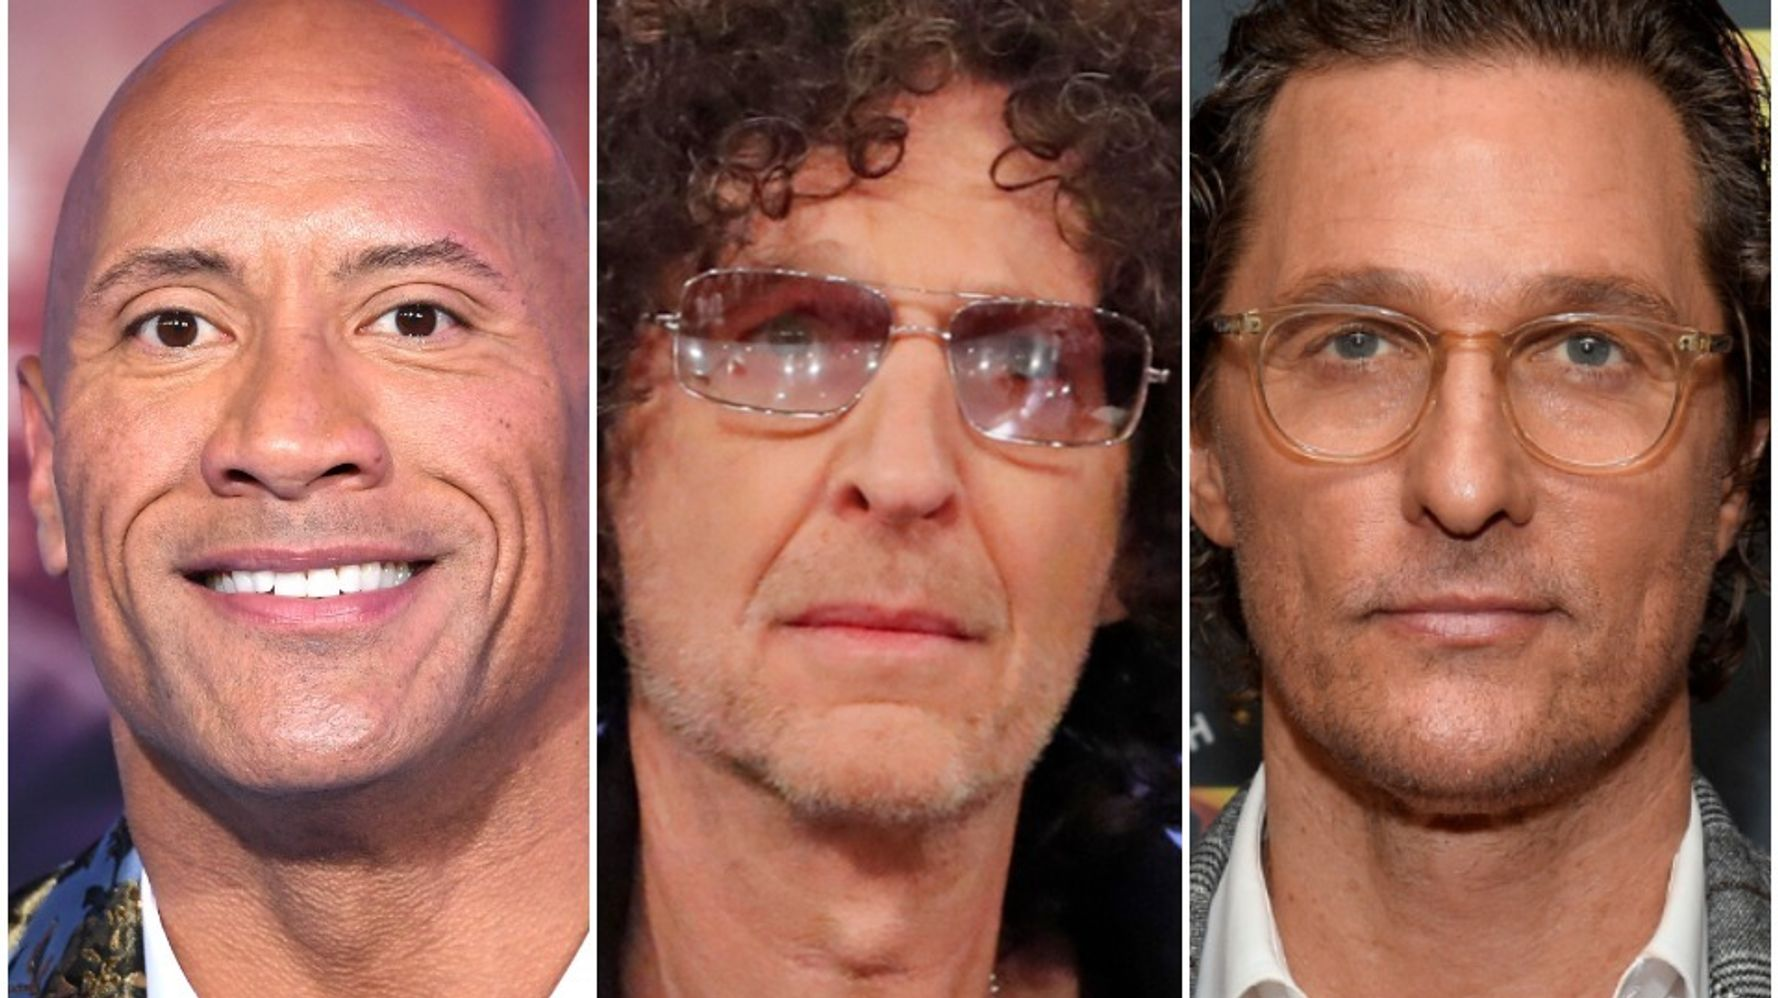 Howard Stern Offers Some Blunt Advice For Dwayne Johnson, Matthew McConaughey